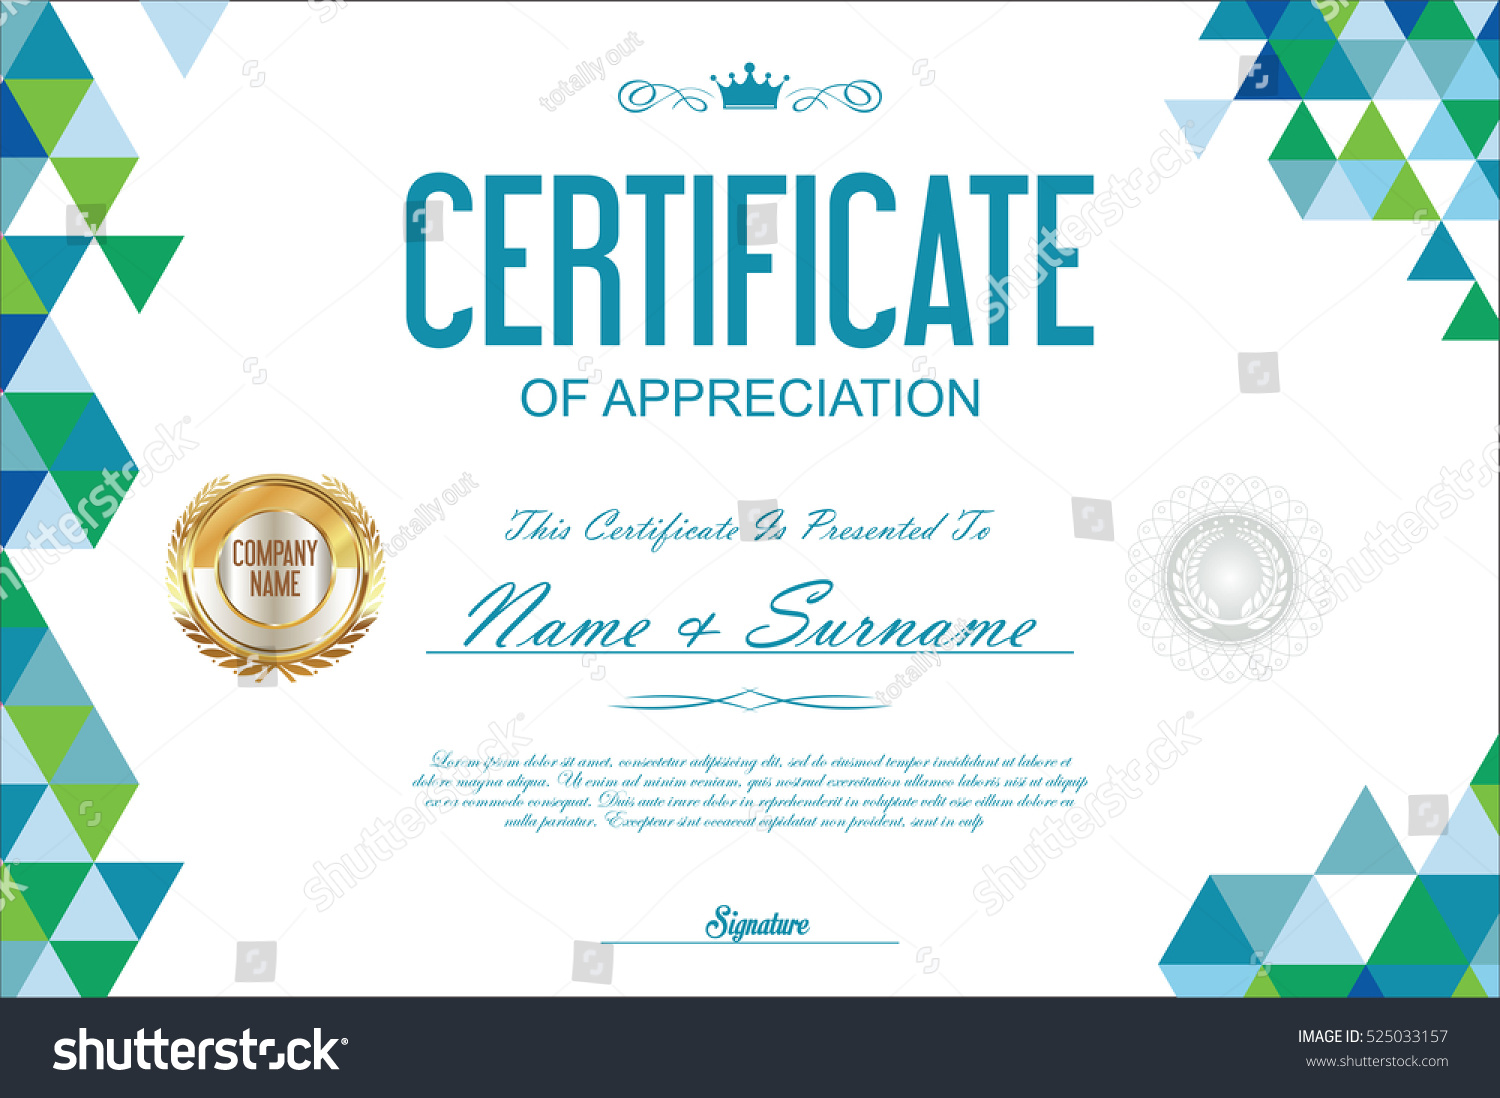 Certificate Template Abstract Geometric Design Background Stock ...